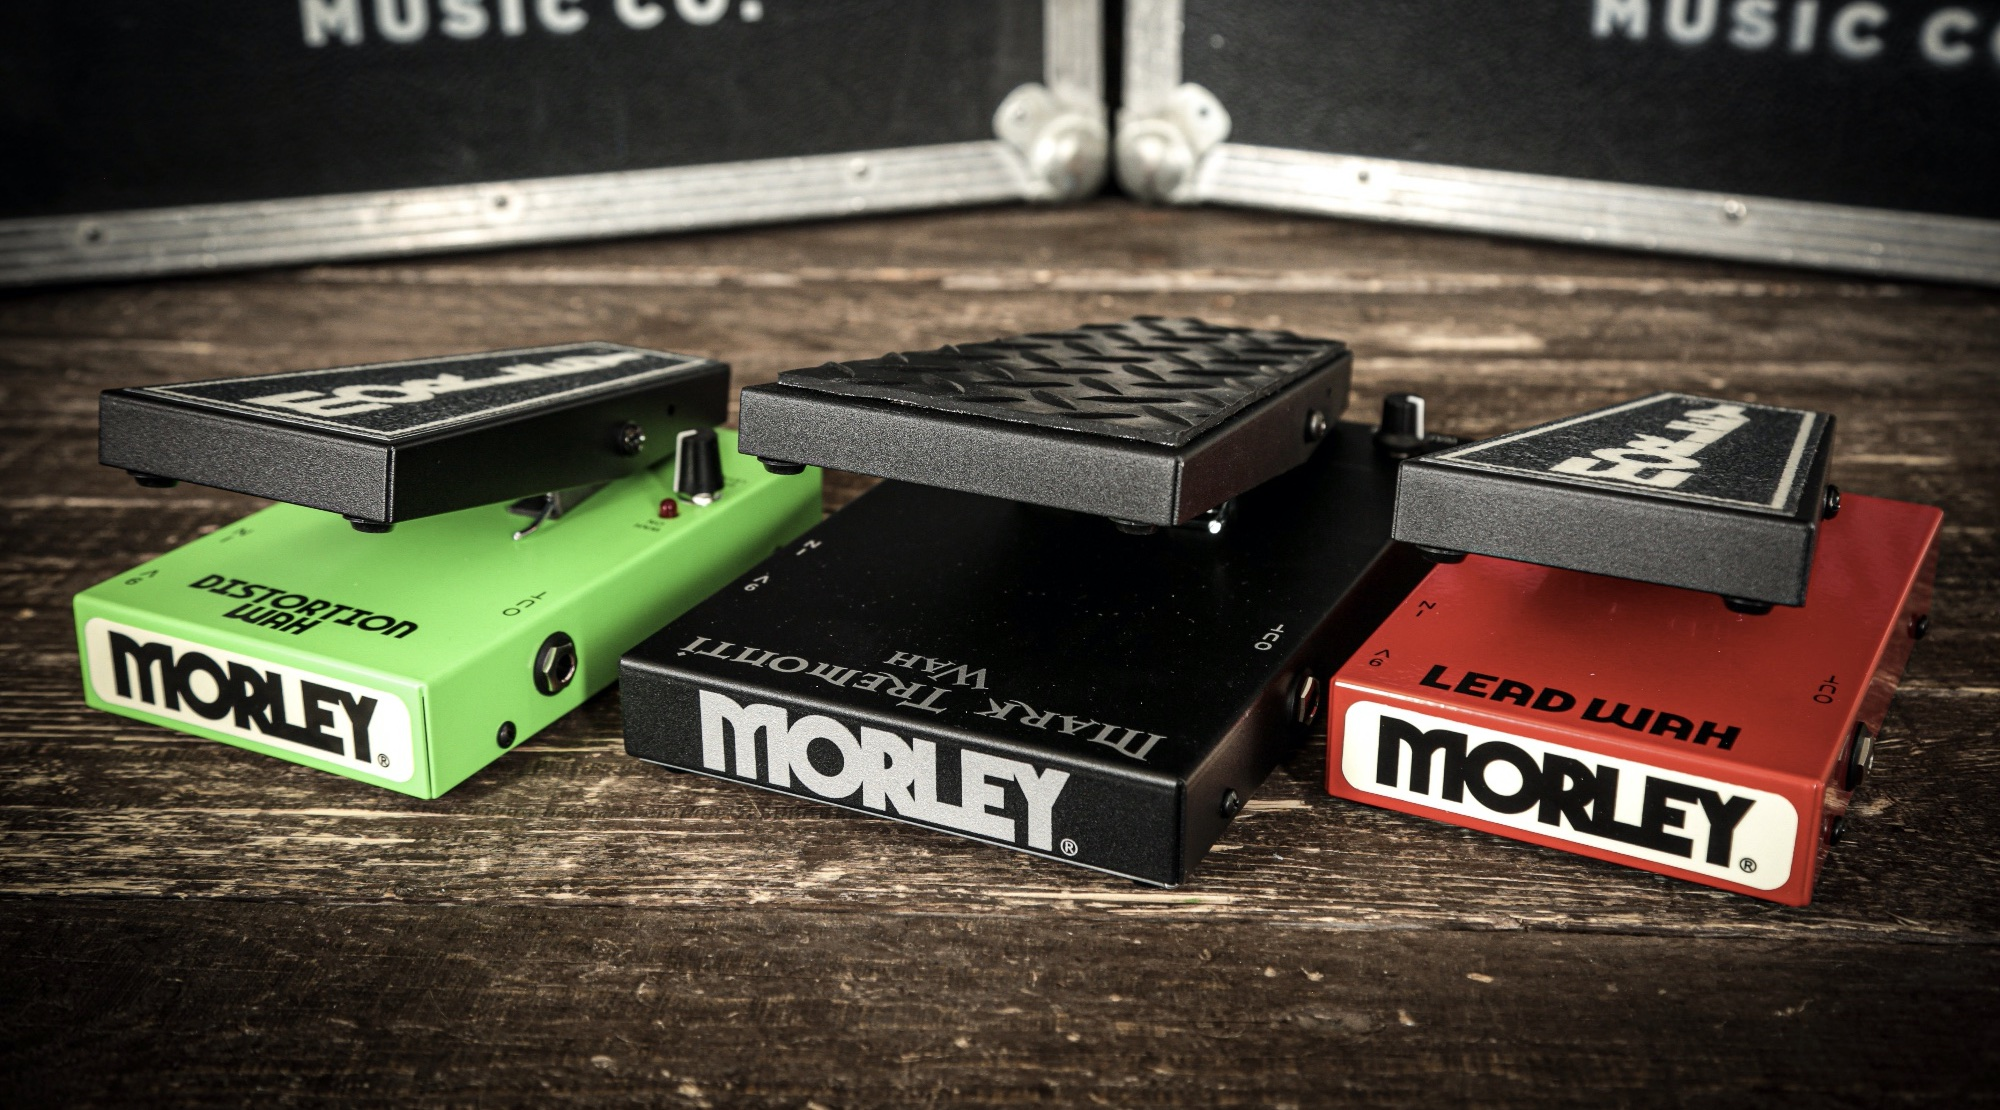 Morley Wah Pedals